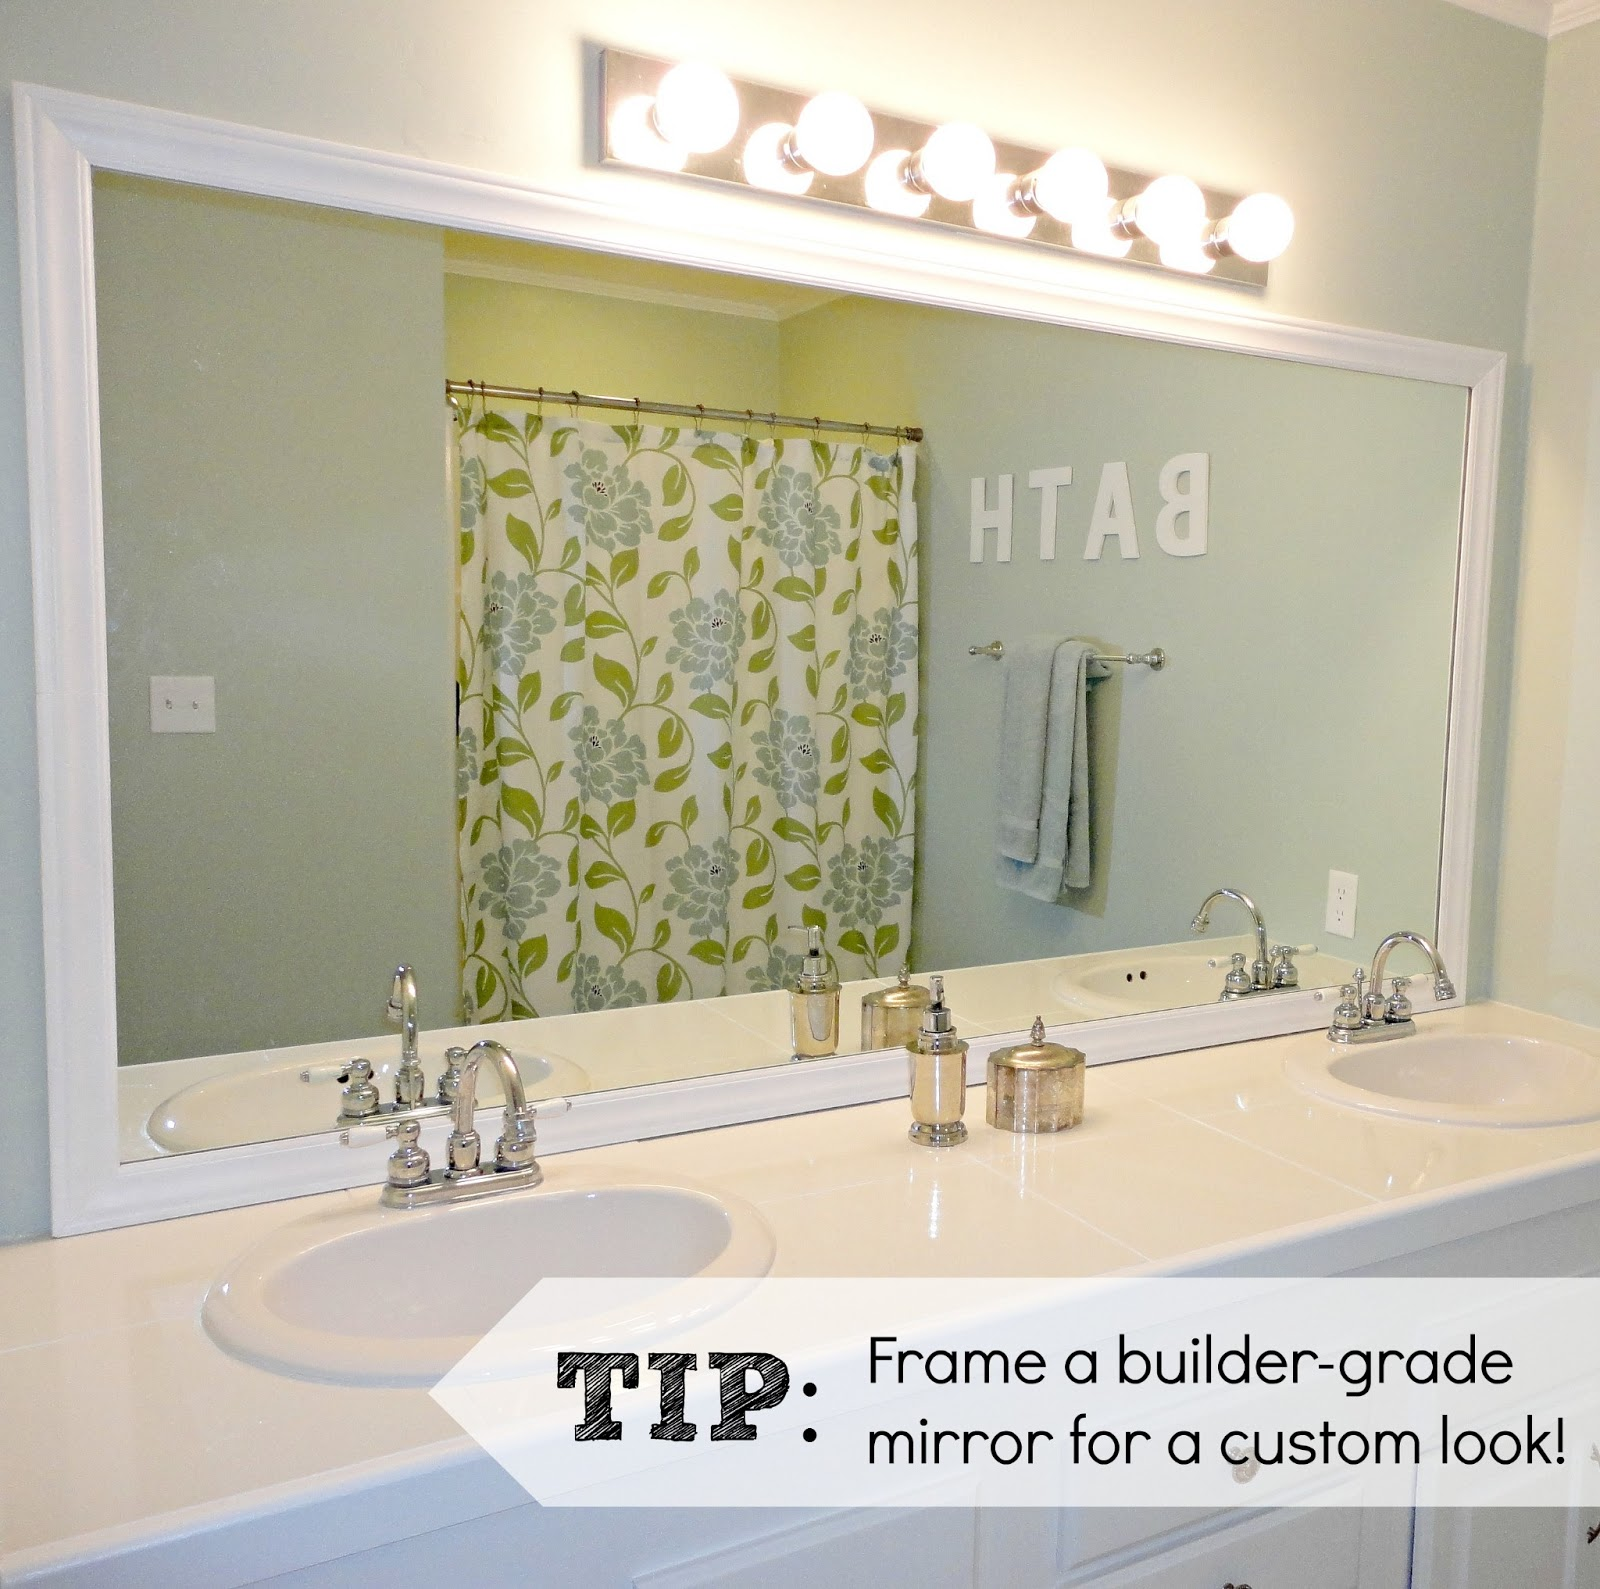 Livelovediy easy diy ideas for updating your bathroom here is the finished mirror all framed in after we glued the frame to the mirror i caulked the gaps and painted the entire frame white amipublicfo Images